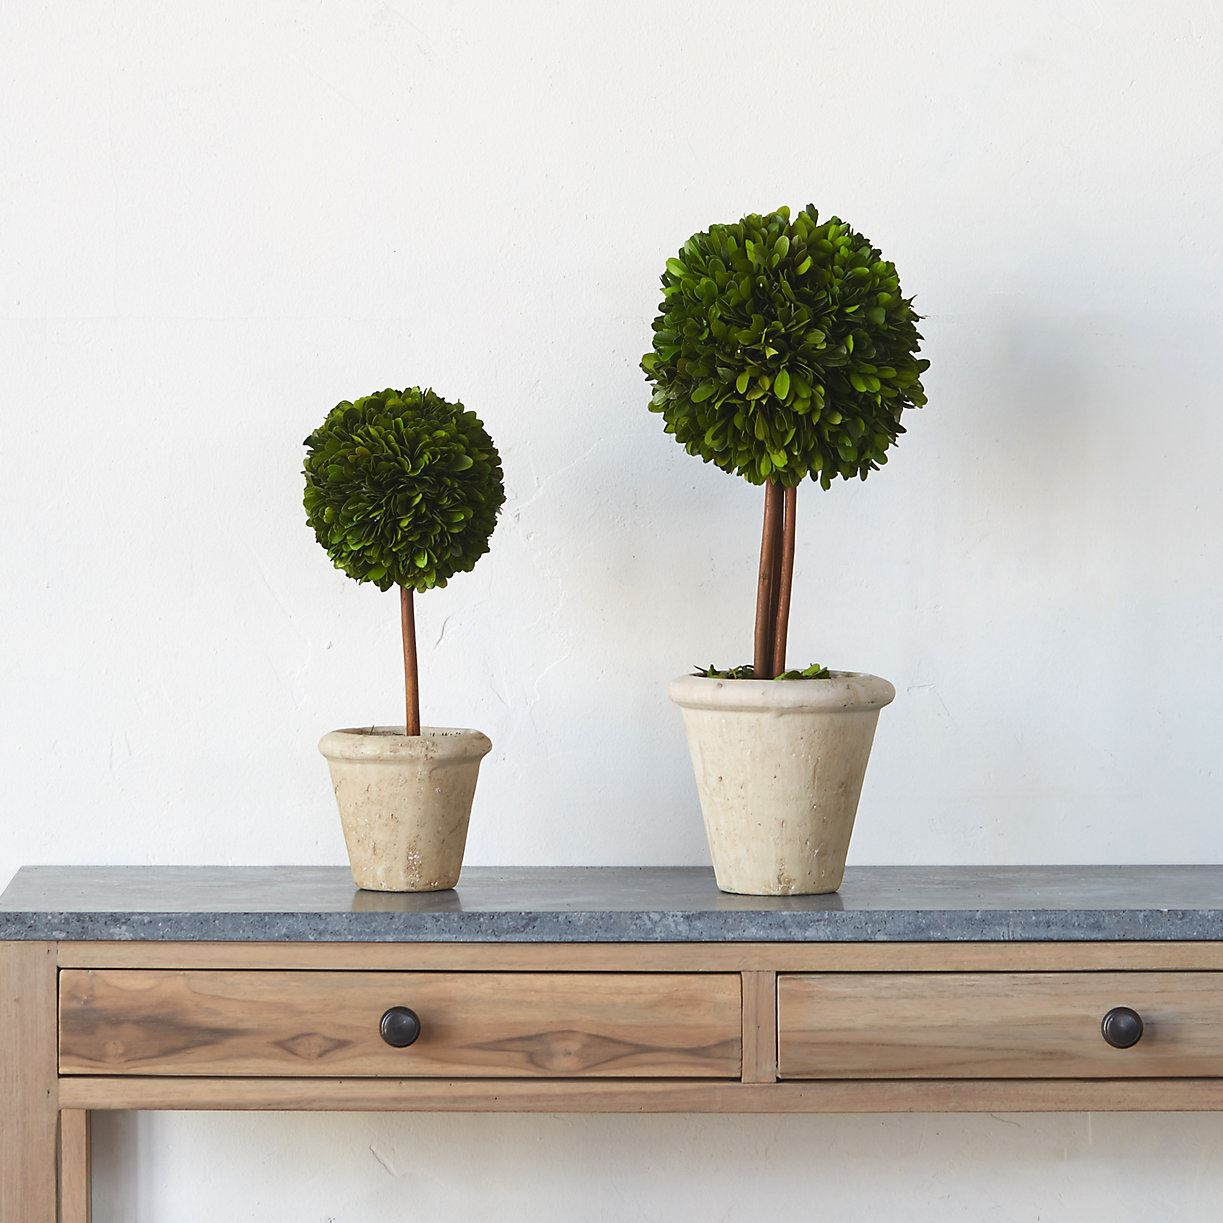 Preserved boxwood topiary from Terrain